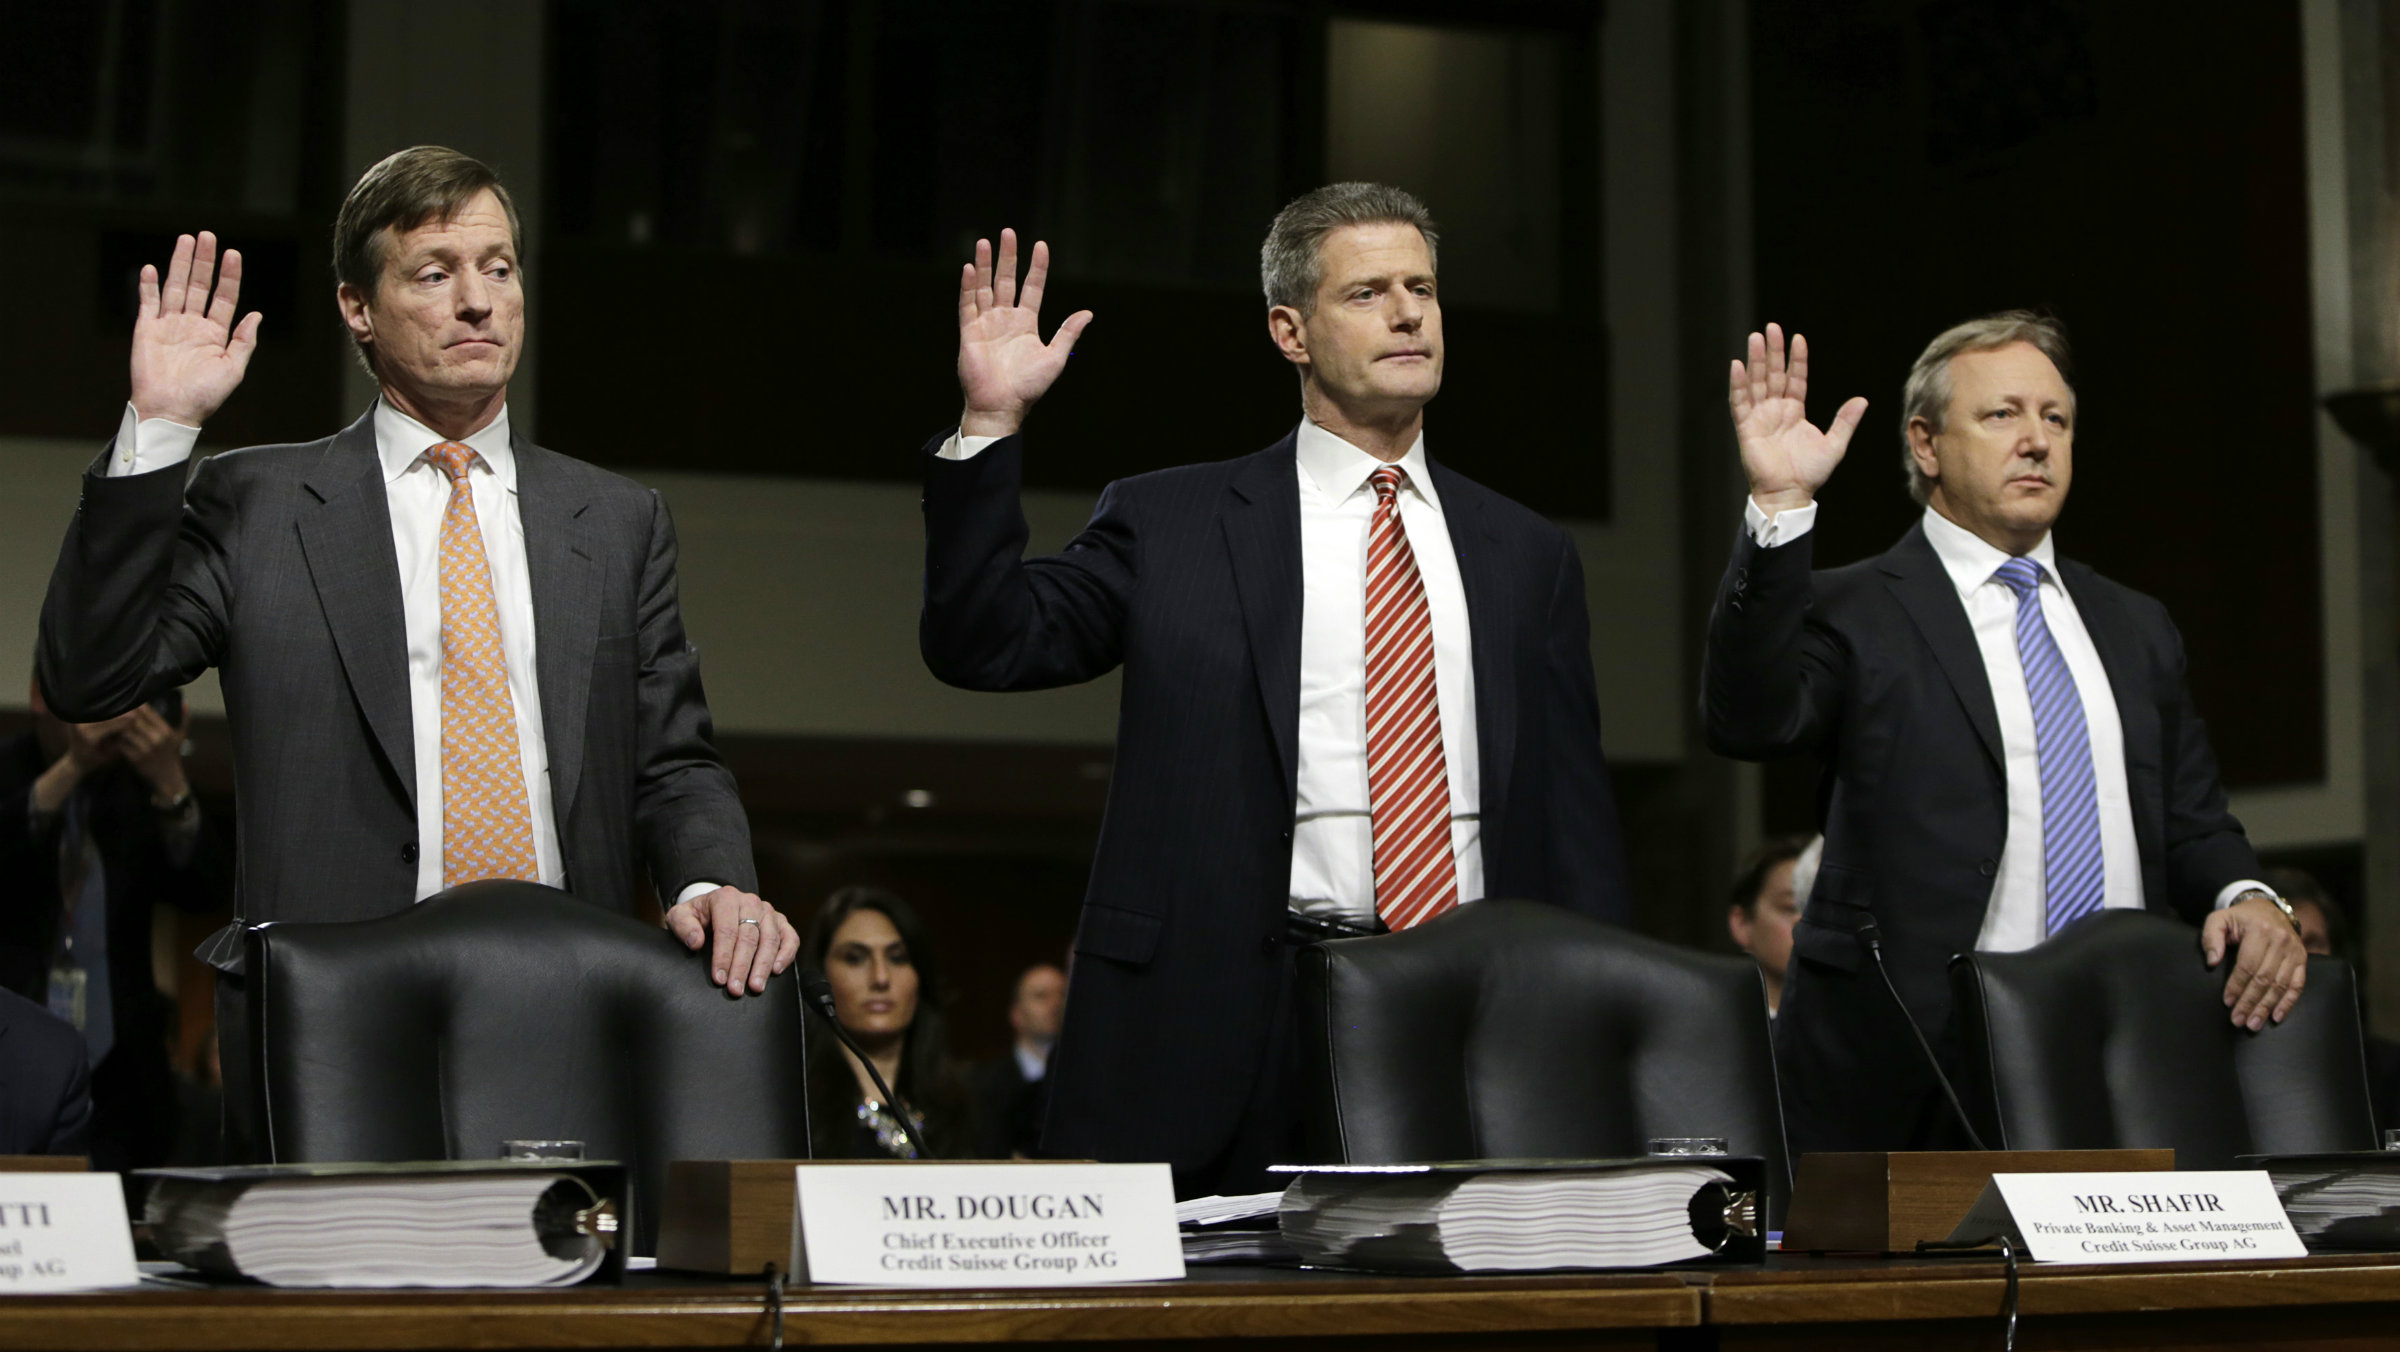 (L-R) Credit Suisse officials CEO Brady Dougan, Robert Shafir and Hans Urlich-Mesiter are sworn in before the Senate Homeland and Governmental Affairs Investigations Subcommittee on Capitol Hill in Washington February 26, 2014.